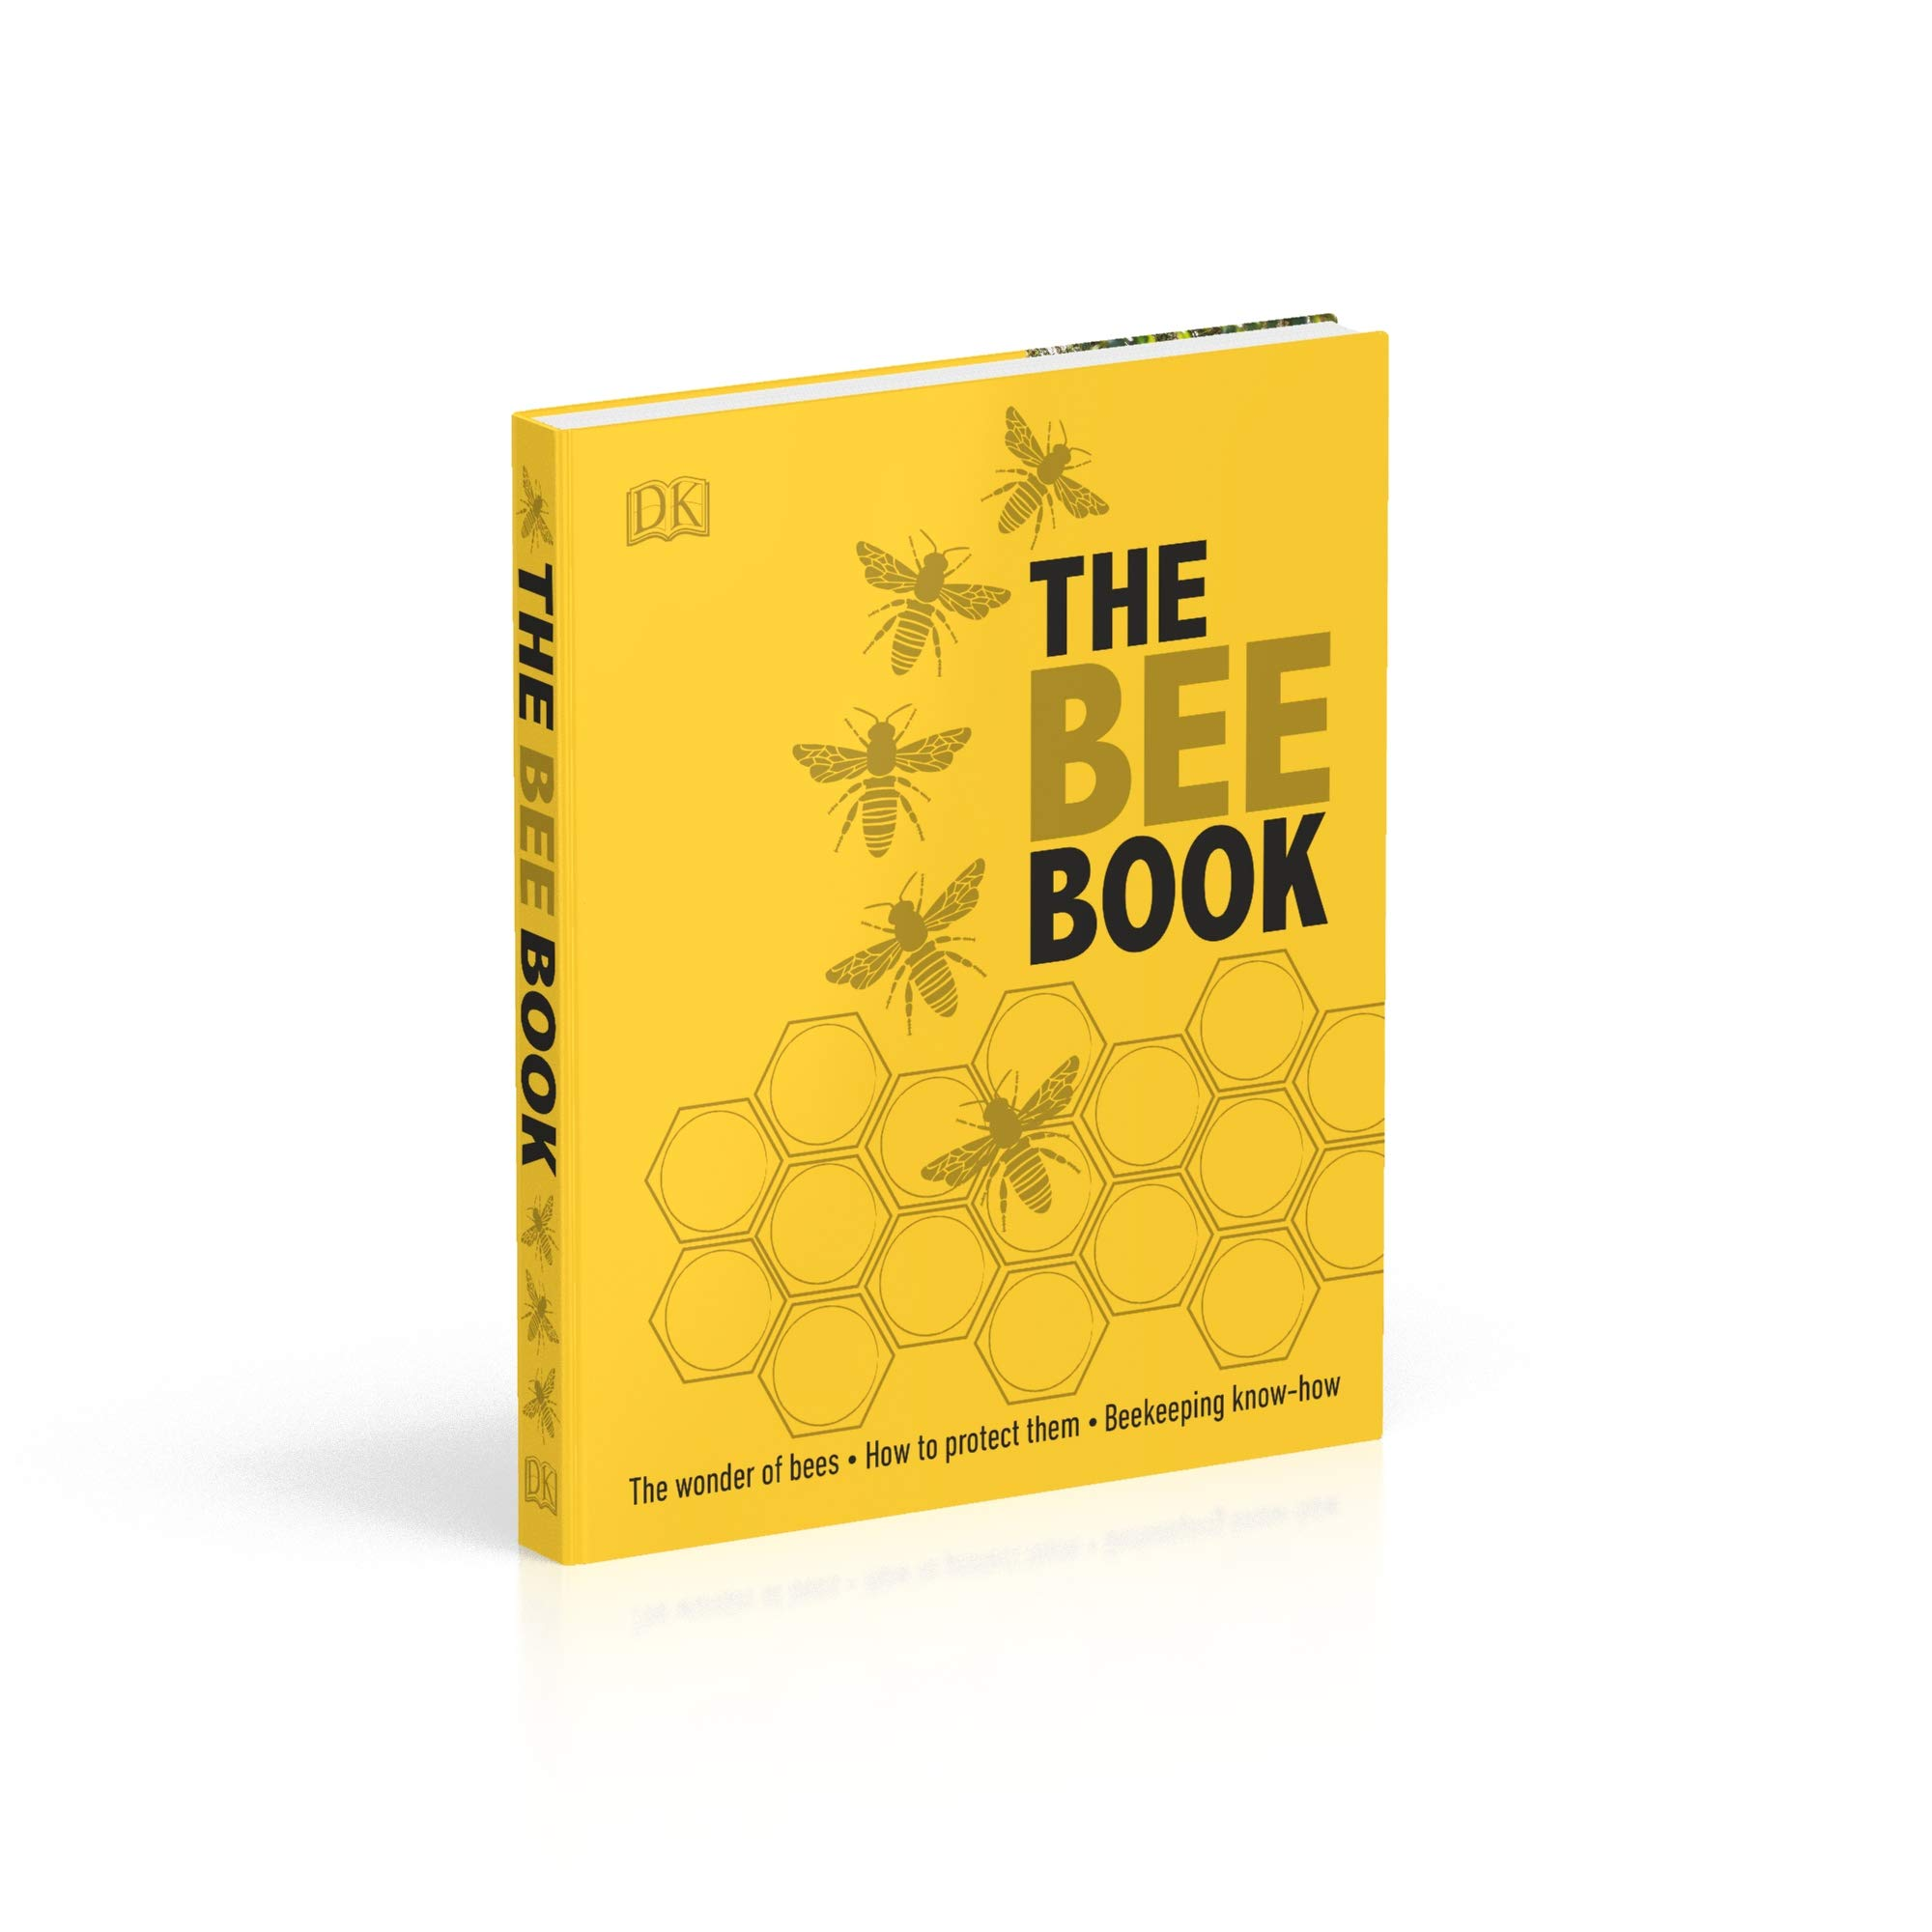 Buy The Bee Book: The Wonder of Bees - How to Protect them